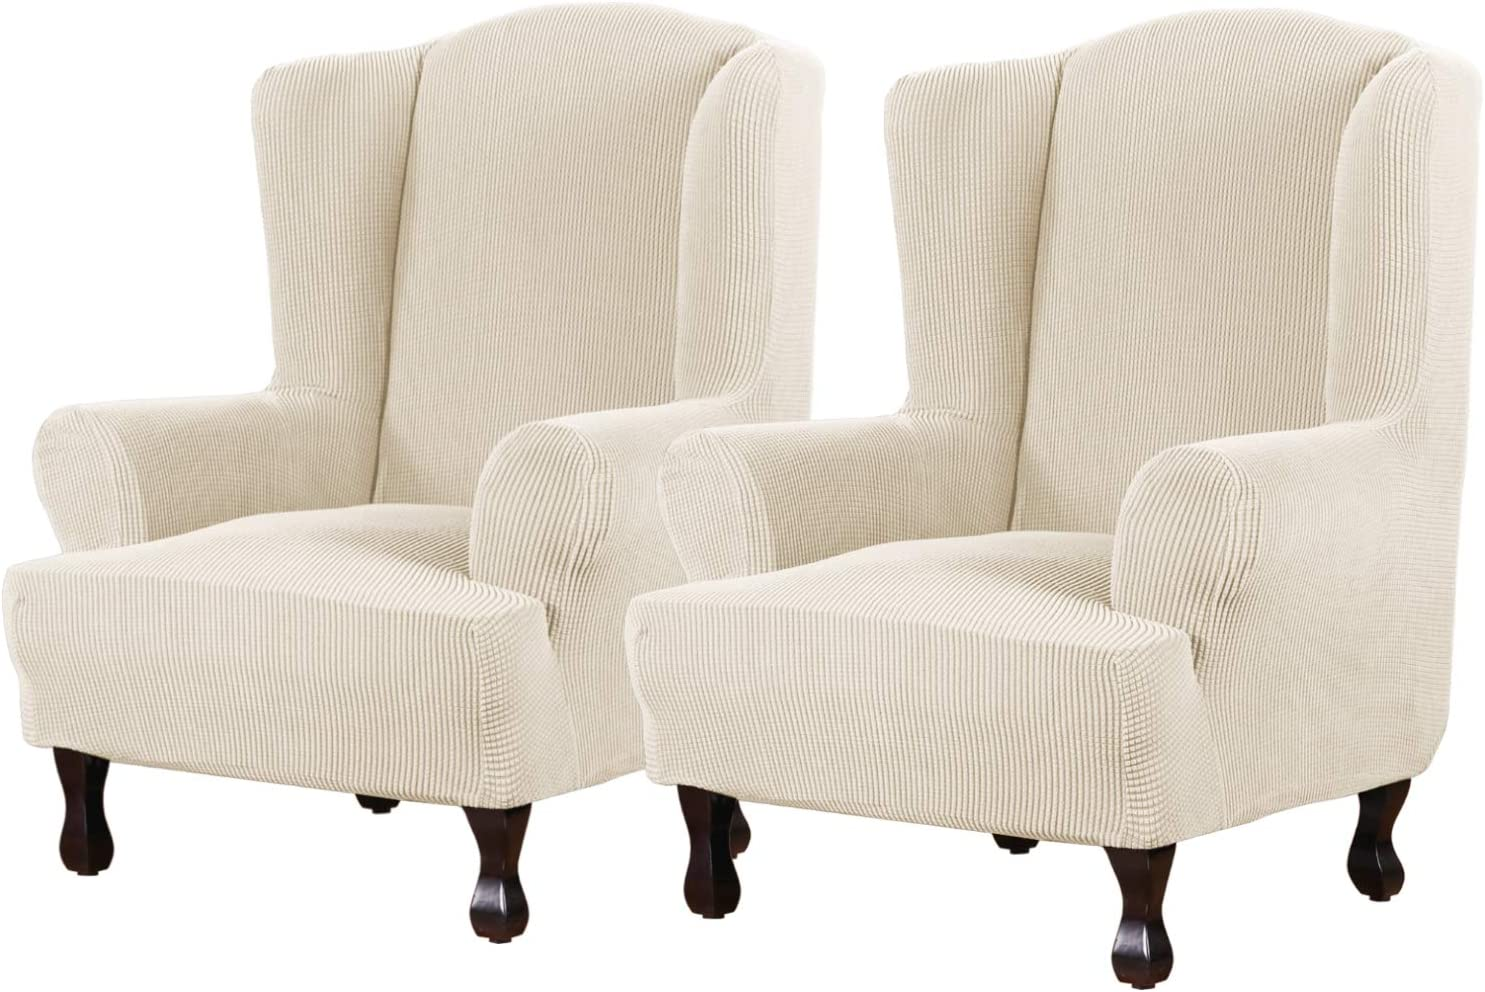 H.VERSAILTEX Super Stretch Stylish Furniture Cover/Wingback Chair Cover Slipcover Spandex Jacquard Checked Pattern, Super Soft Slipcover Machine Washable/Skid Resistance (2 Pack Wing Chair, Natural)